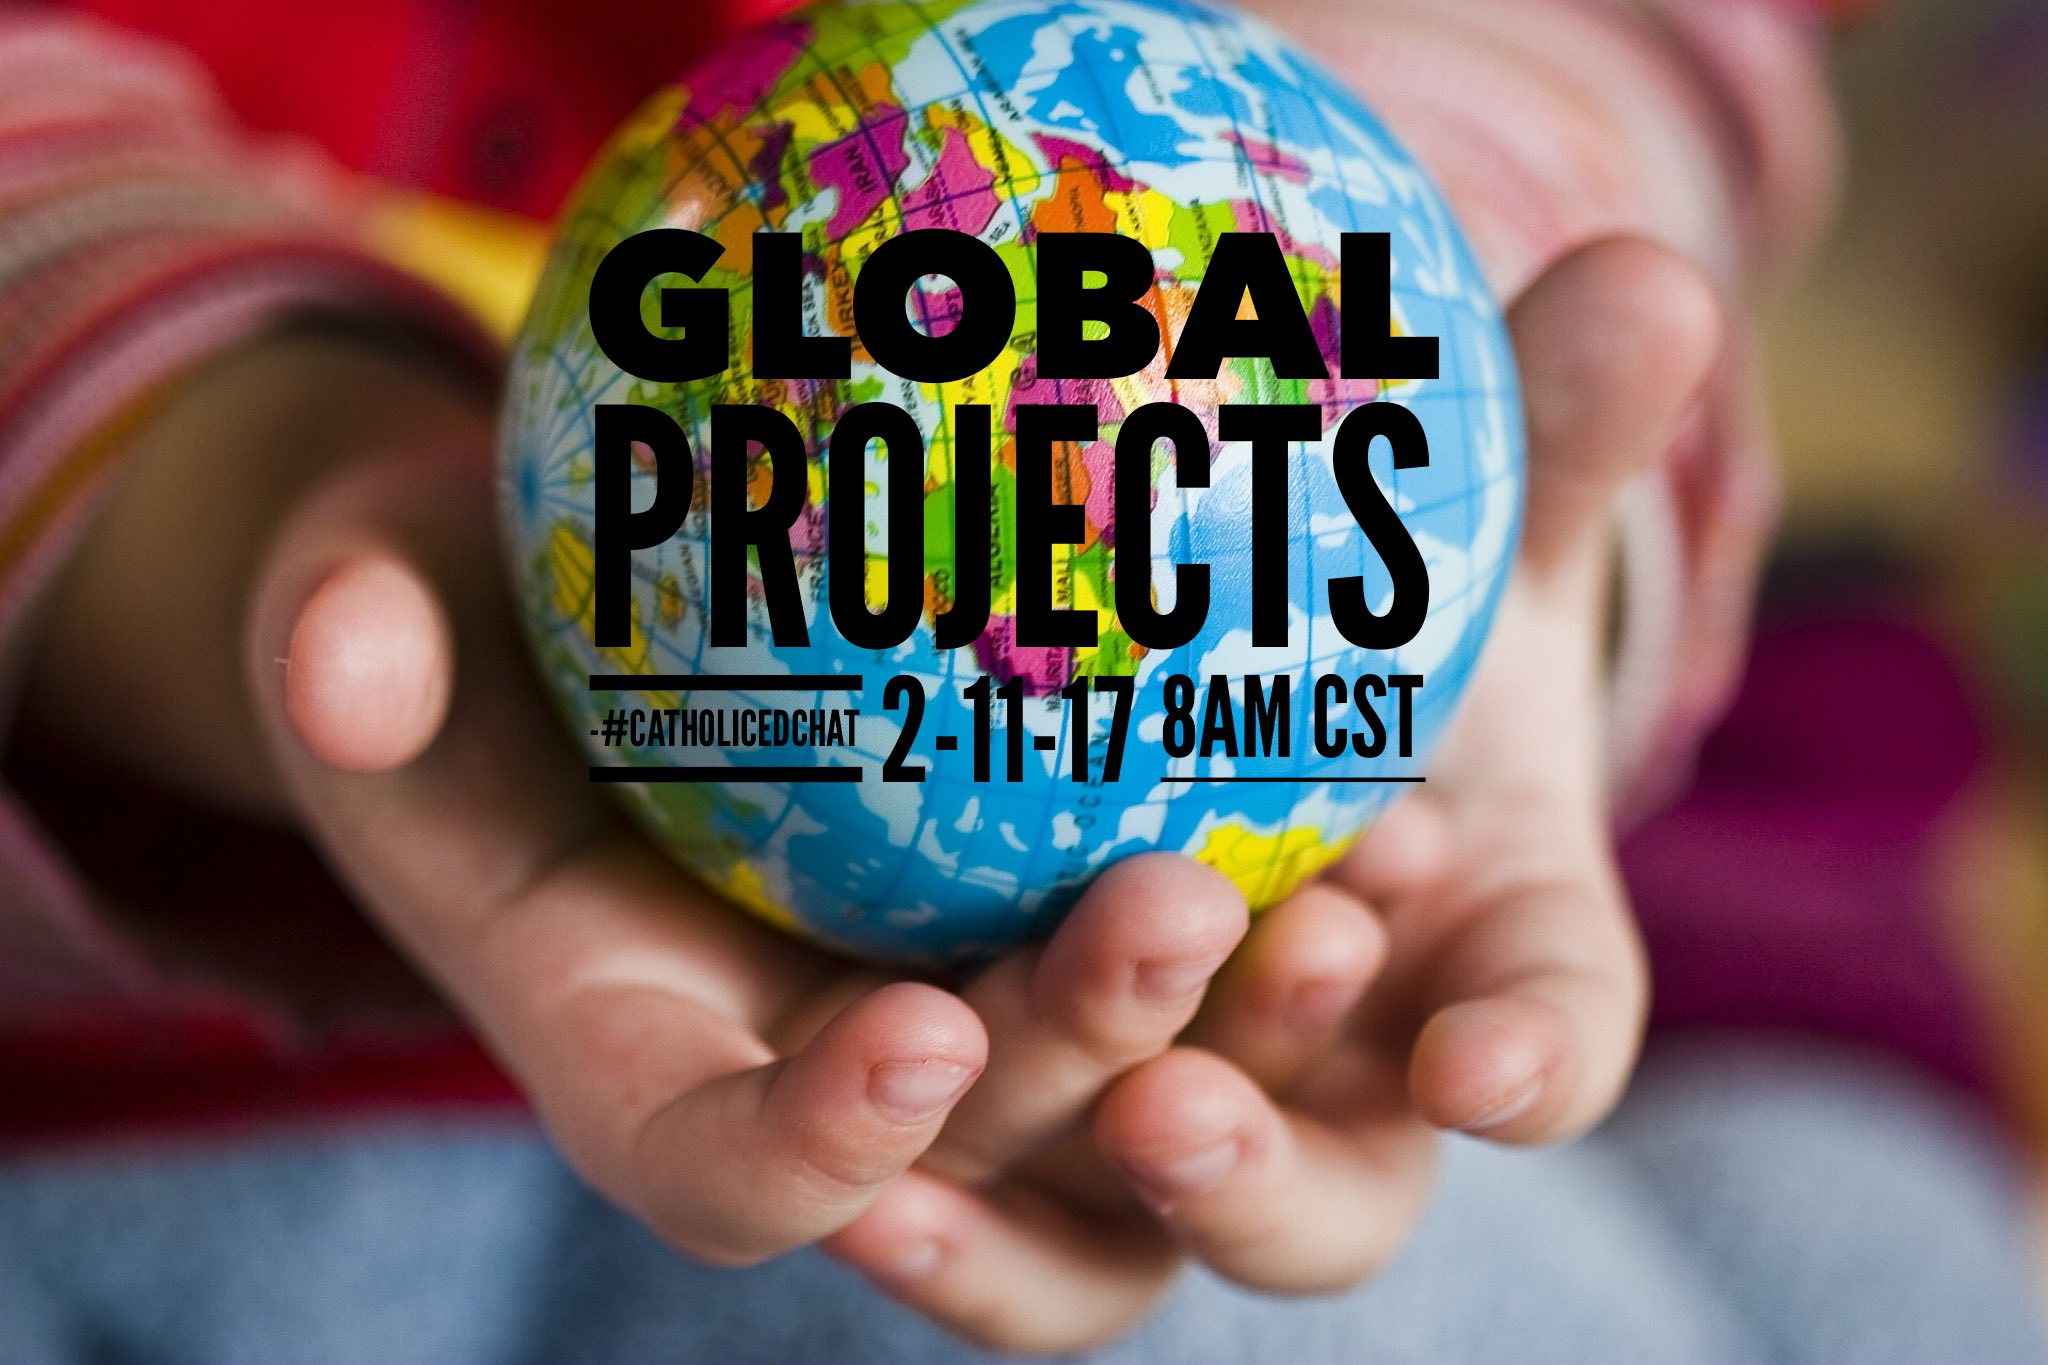 Join us at 8am CST for #CatholicEdChat our topic is Global Projects https://t.co/TDRZMqoEXA